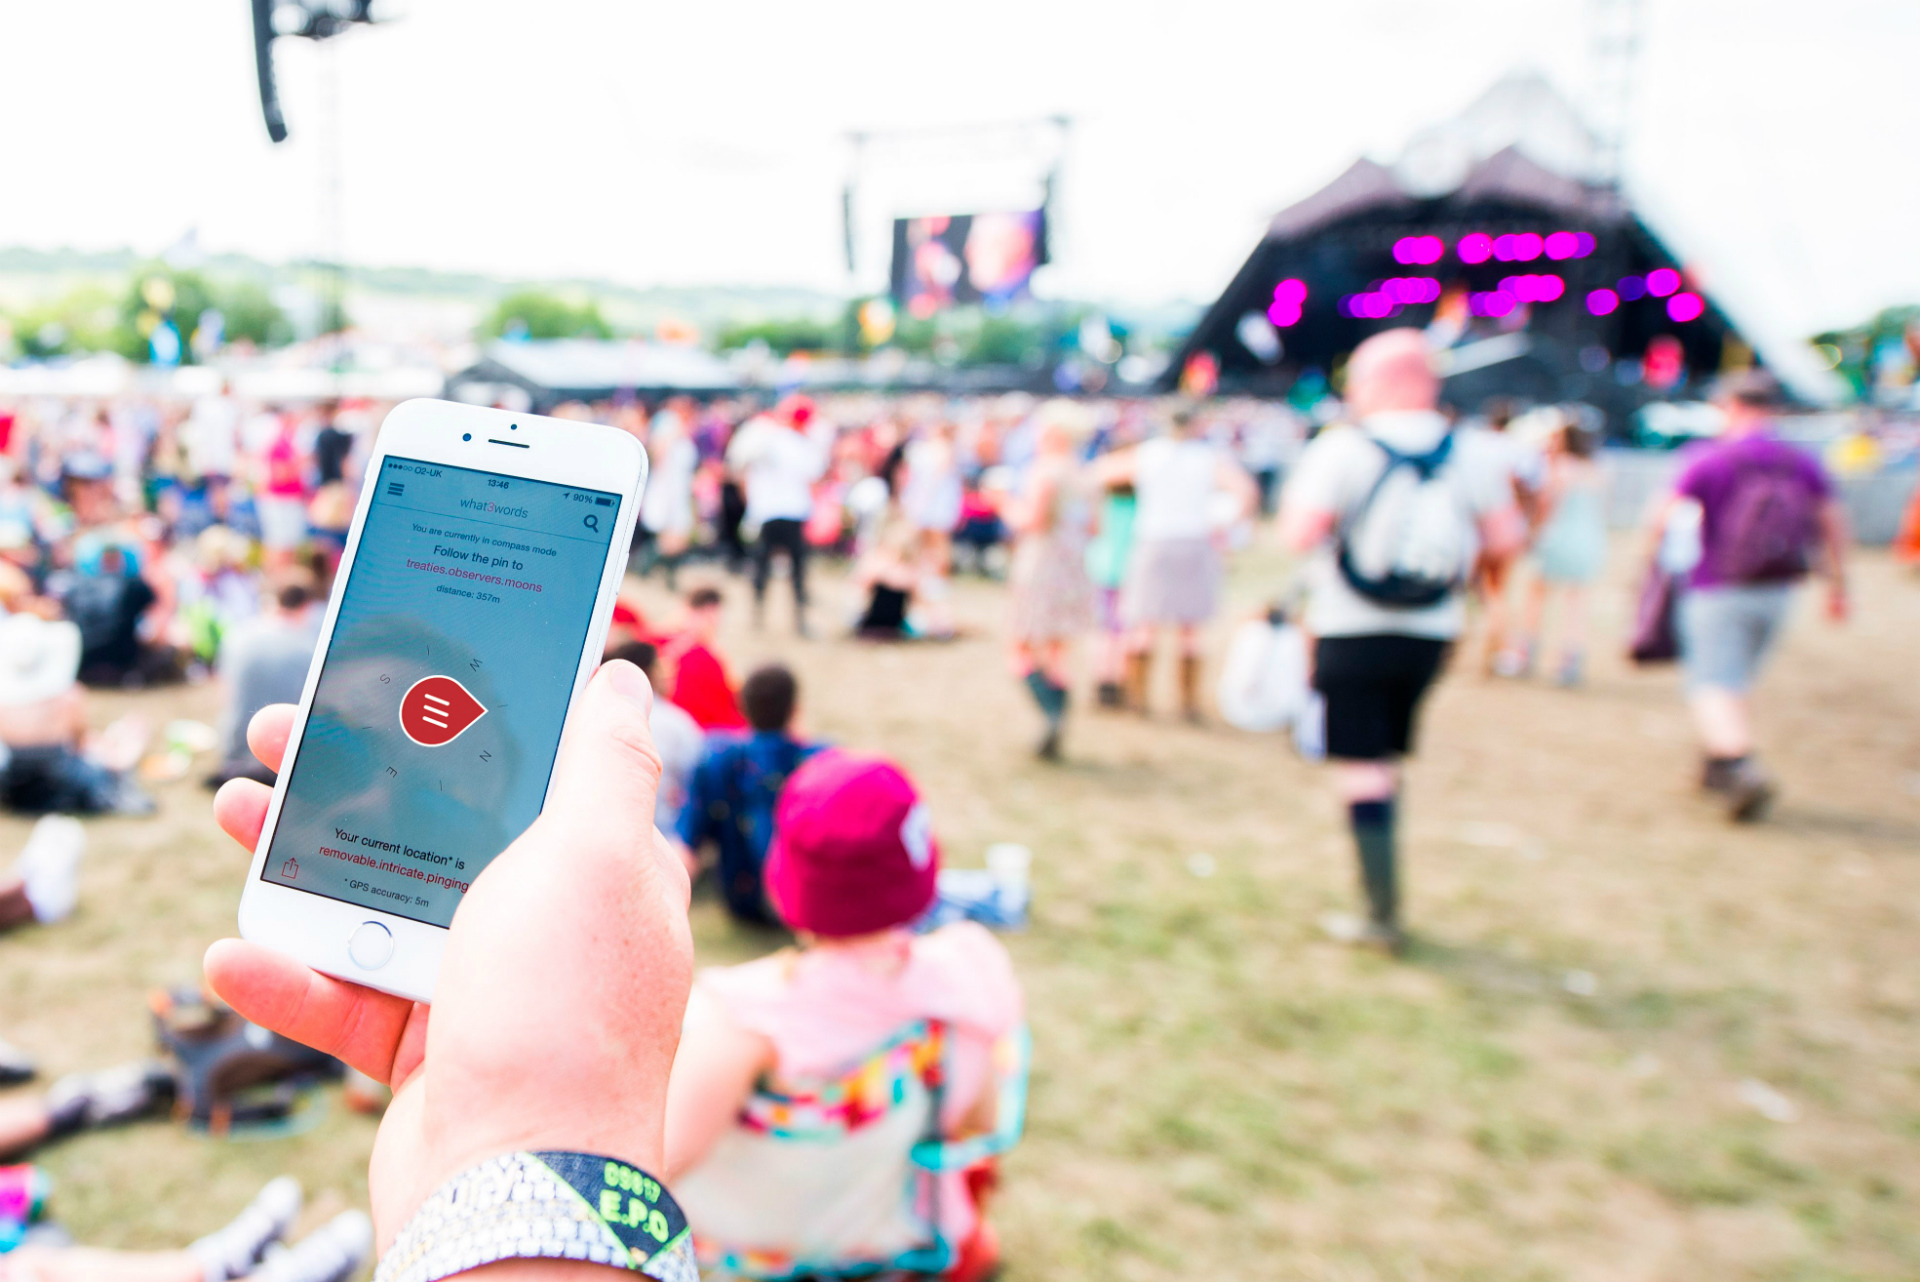 person using what 3 words to locate friends at a festival